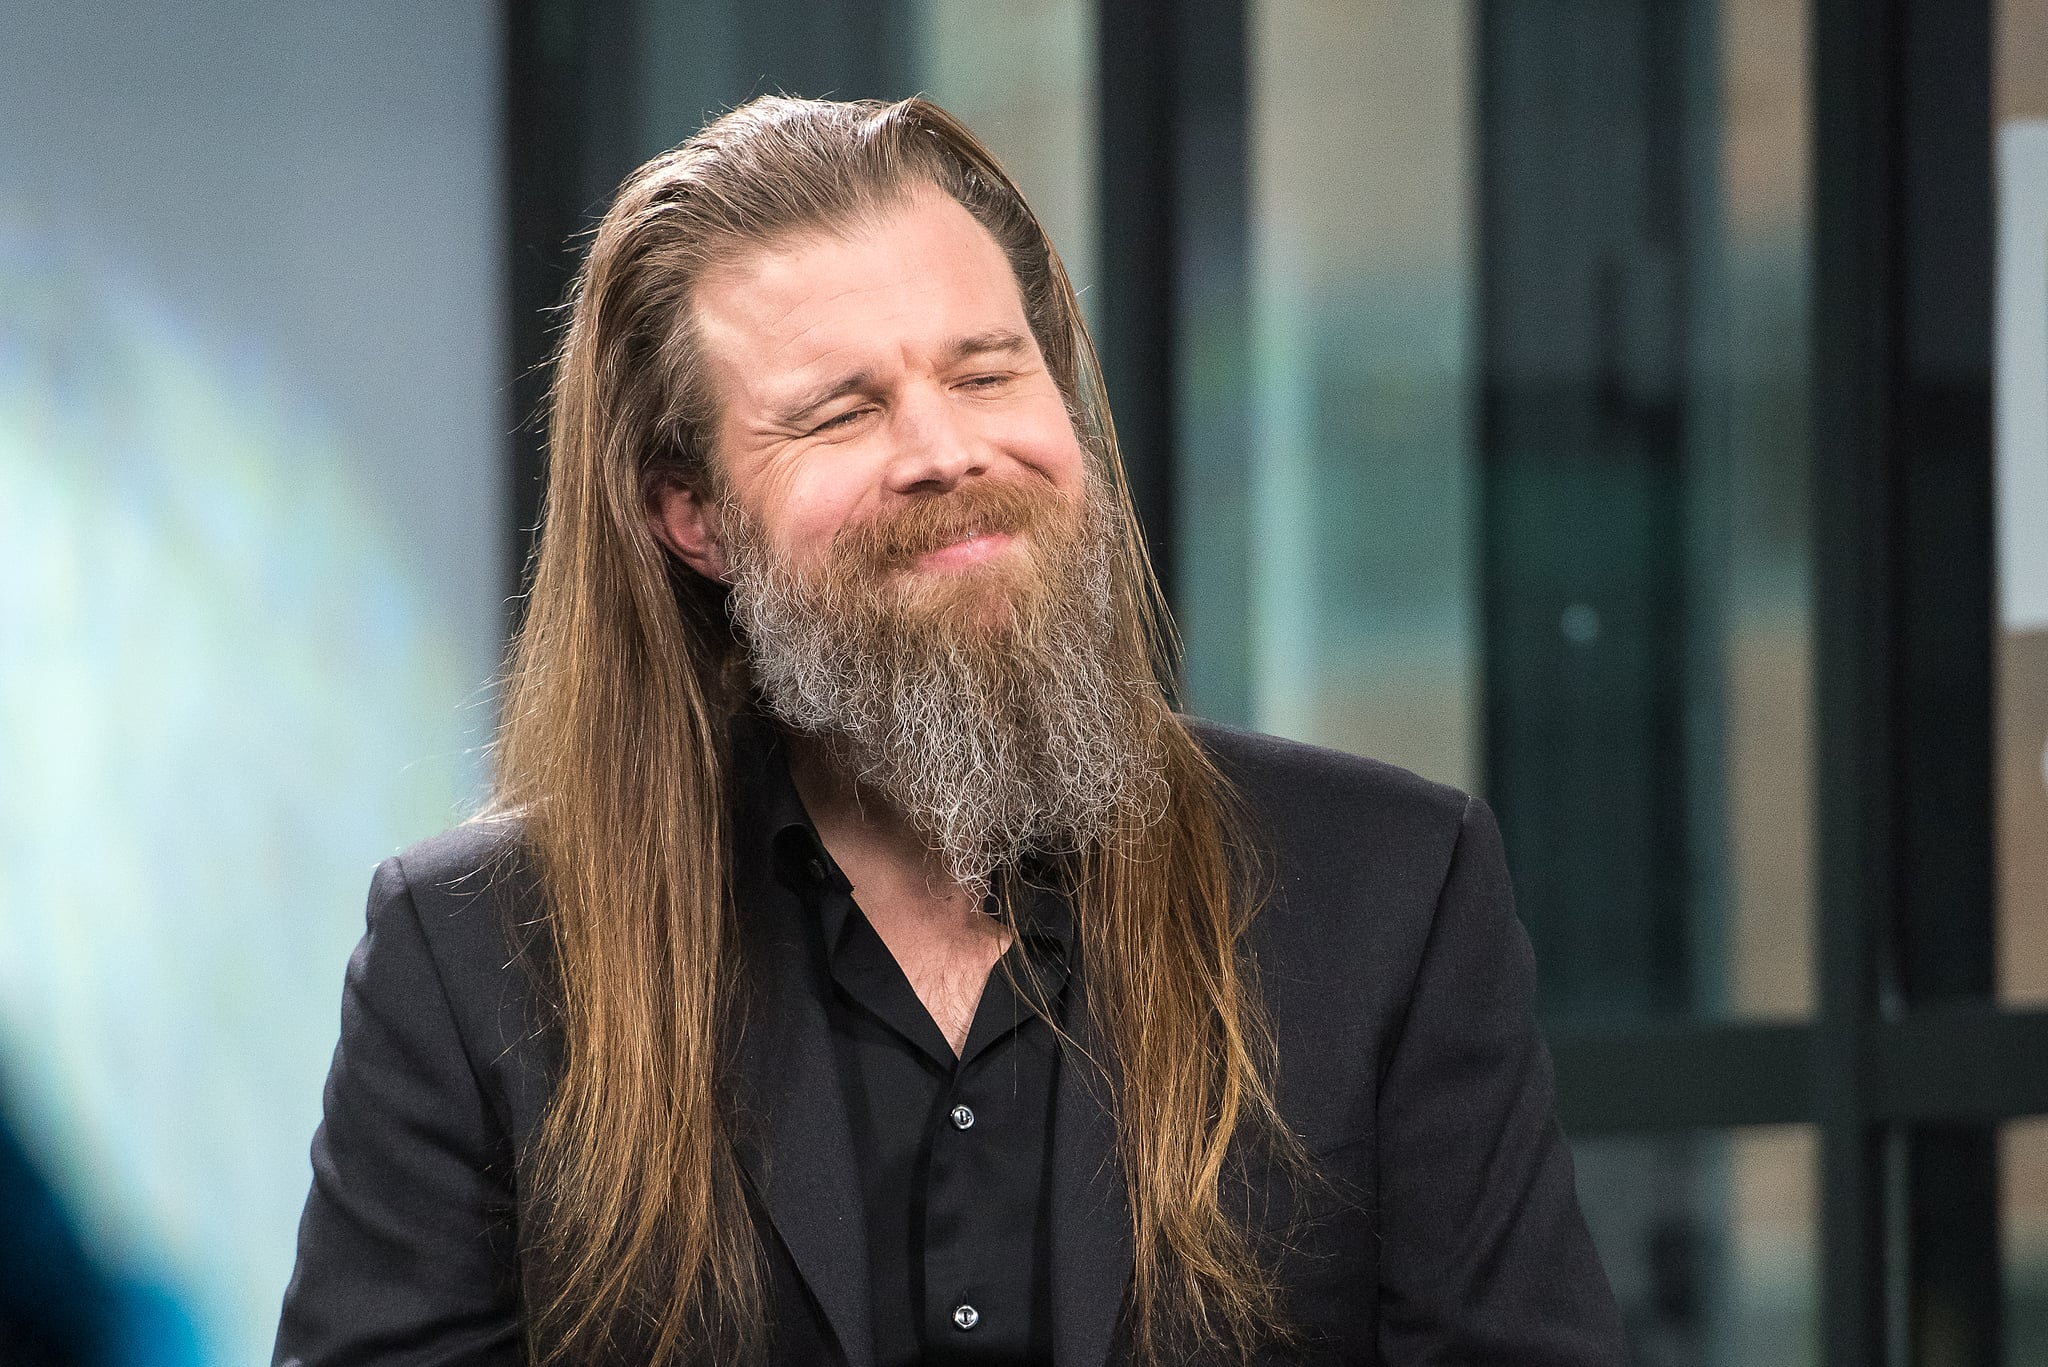 NEW YORK, NY - JANUARY 20:  Ryan Hurst attends the Build Series to discuss